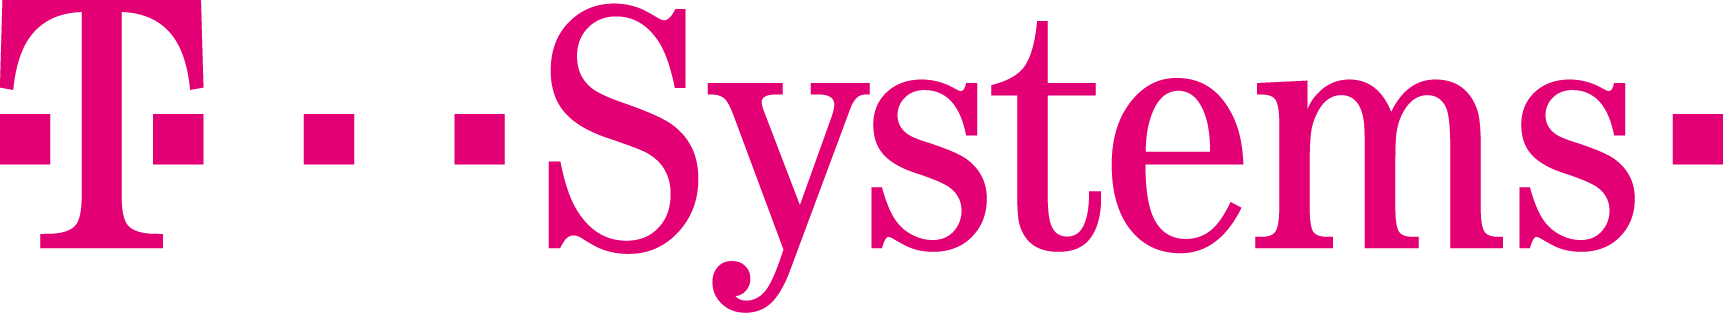 T-Systems Austria